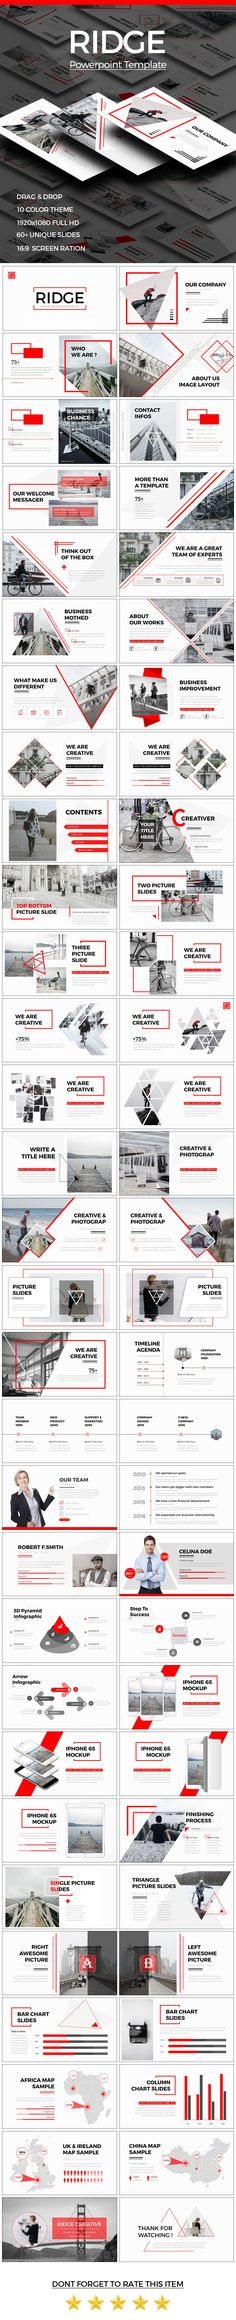 20 Powerpoint Templates You Can Use For Free Pinterest Template